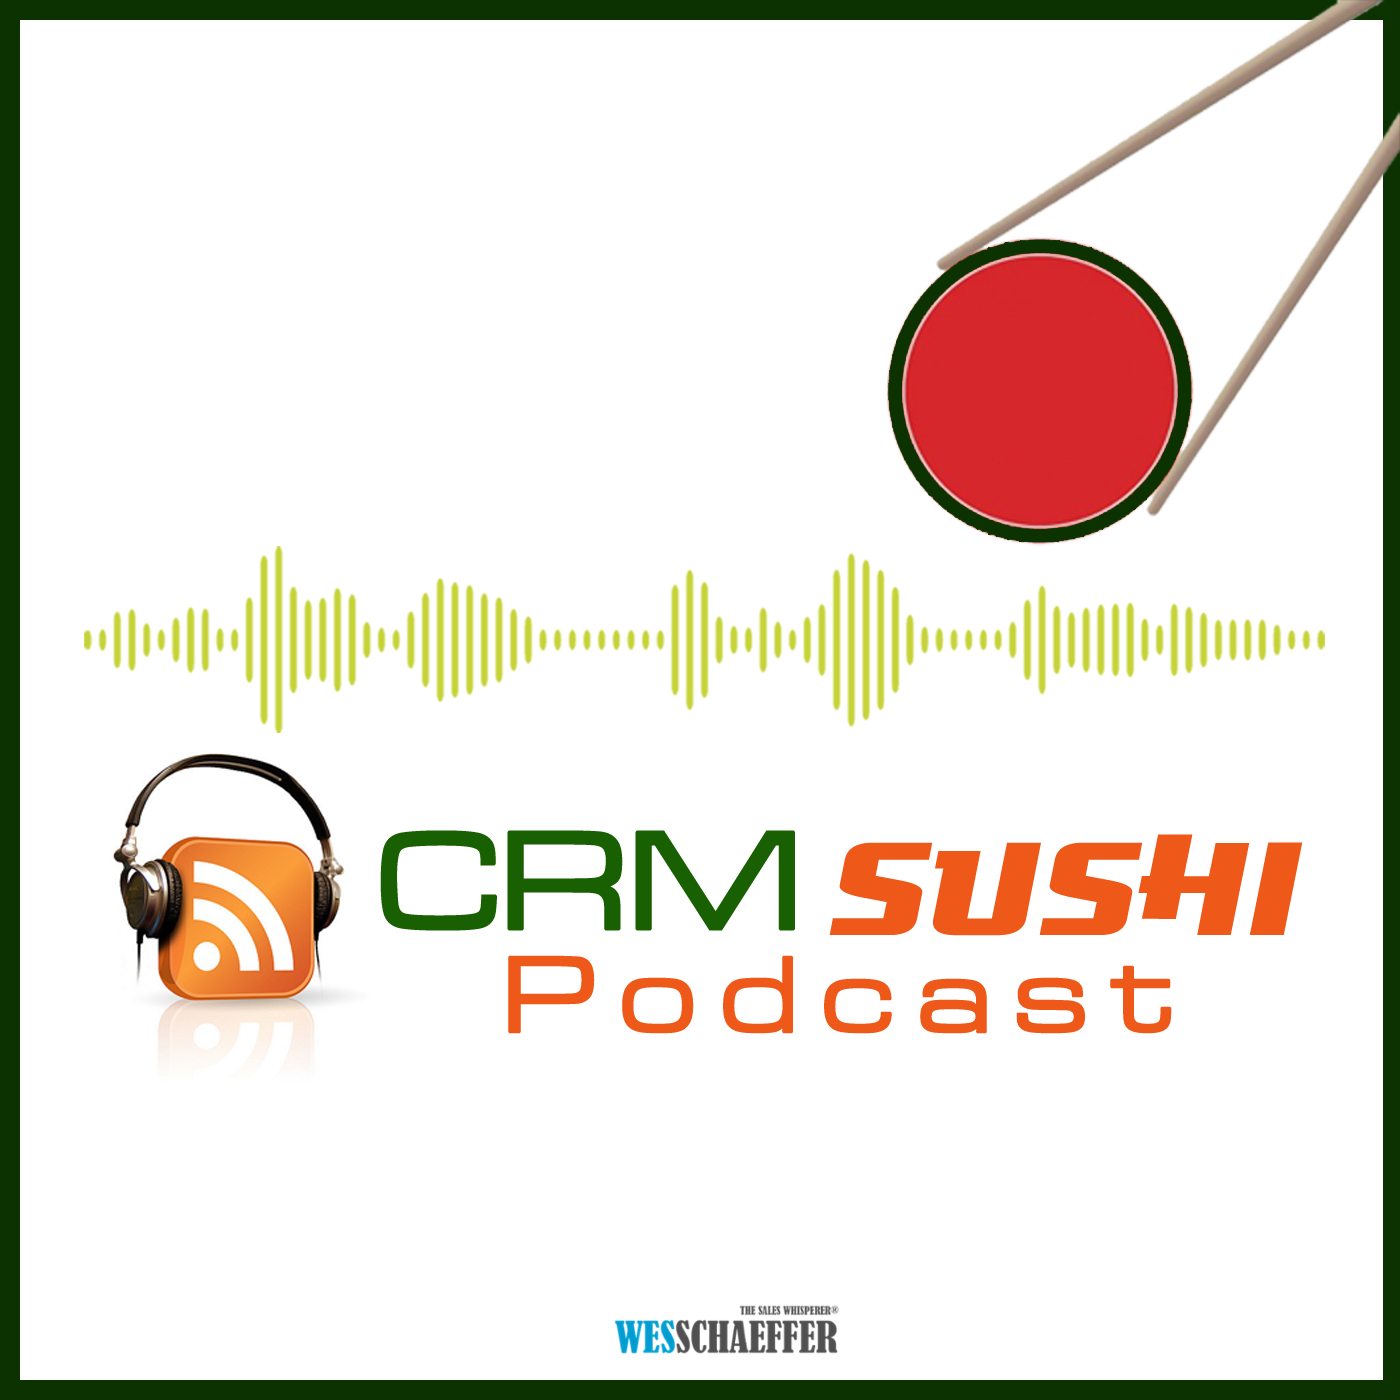 The CRM Sushi Podcast is hosted by Wes Schaeffer, The Sales Whisperer®.